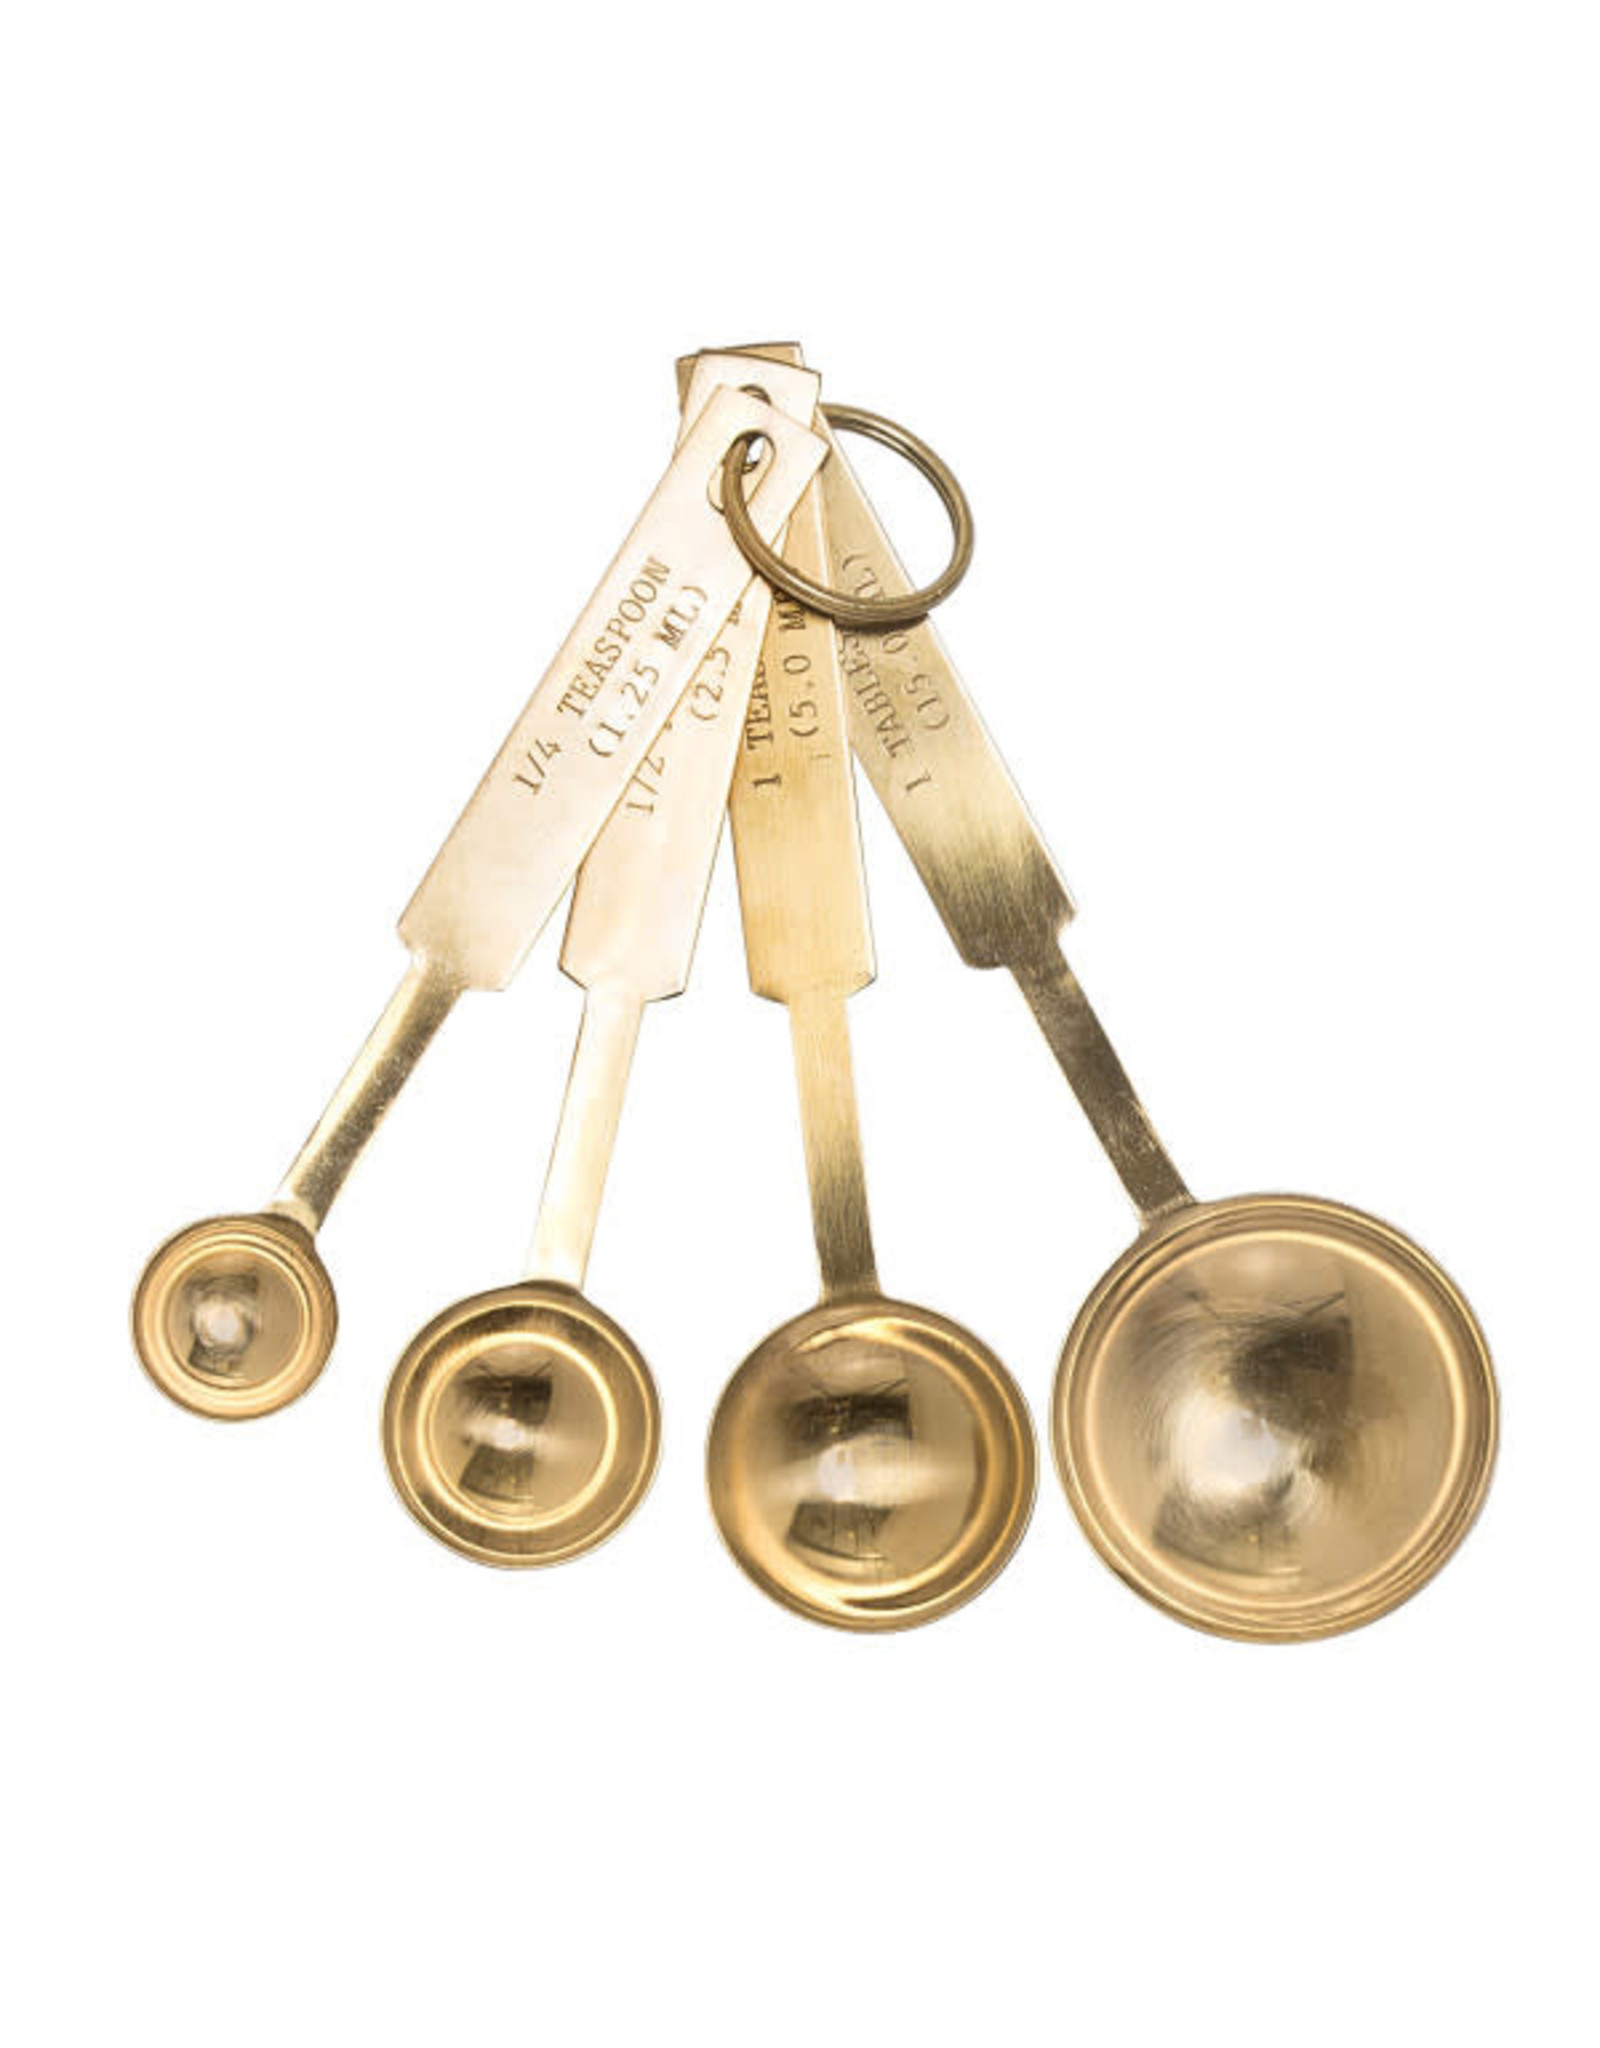 Stainless Steel Measuring Spoons Set Gold Finish